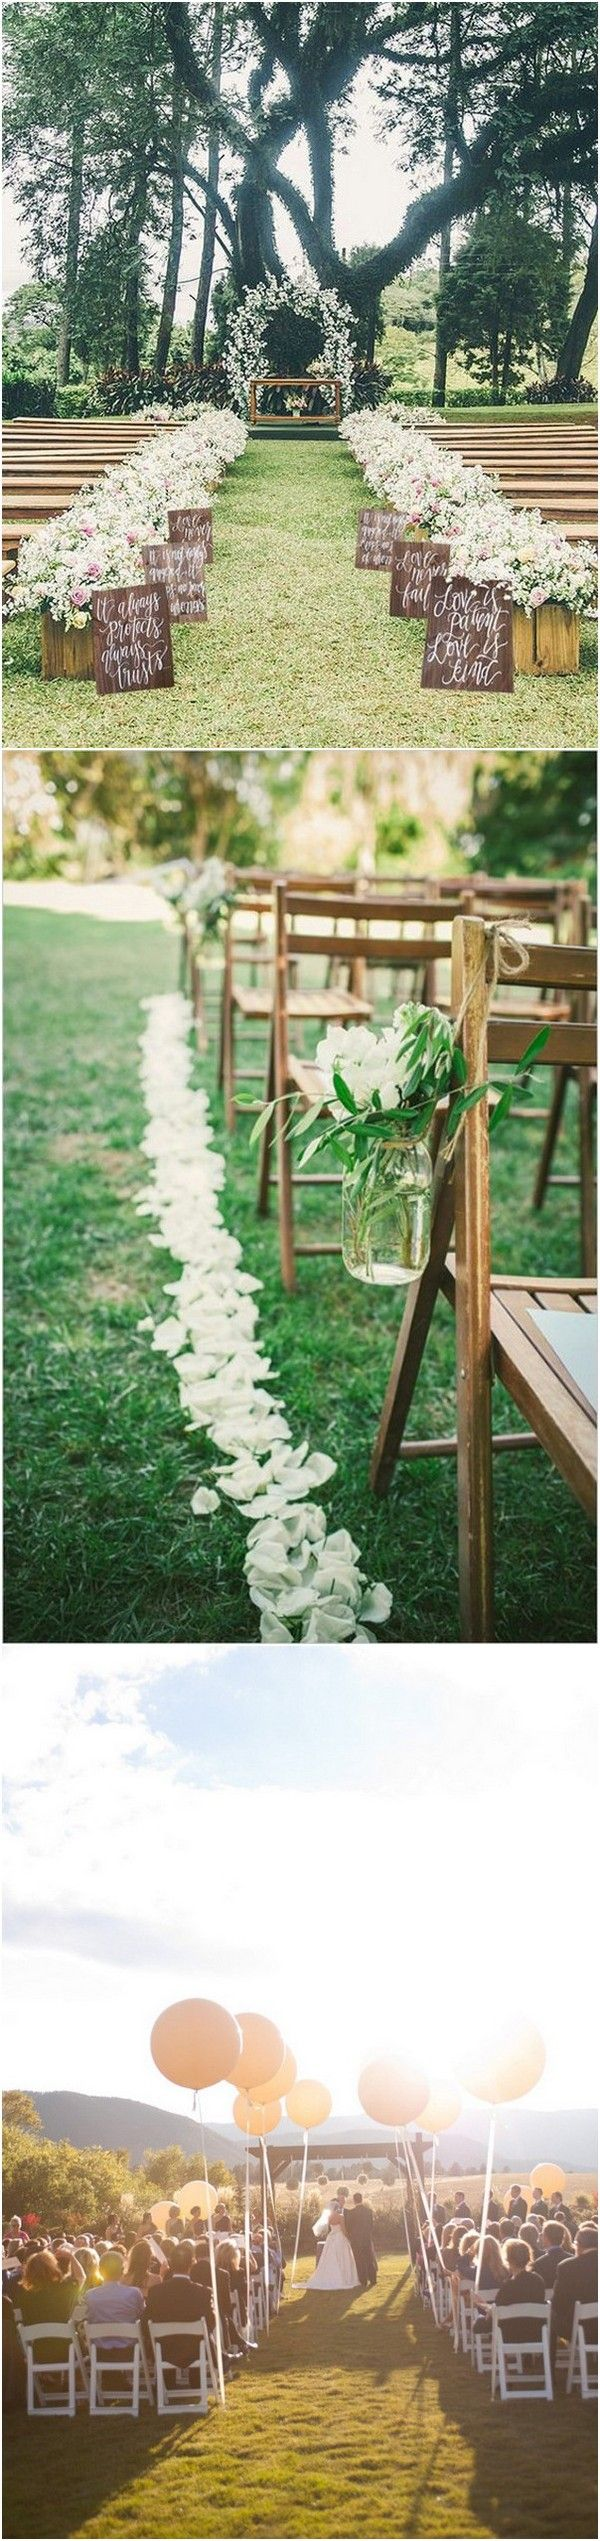 romantic outdoor wedding ceremony ideas with balloons